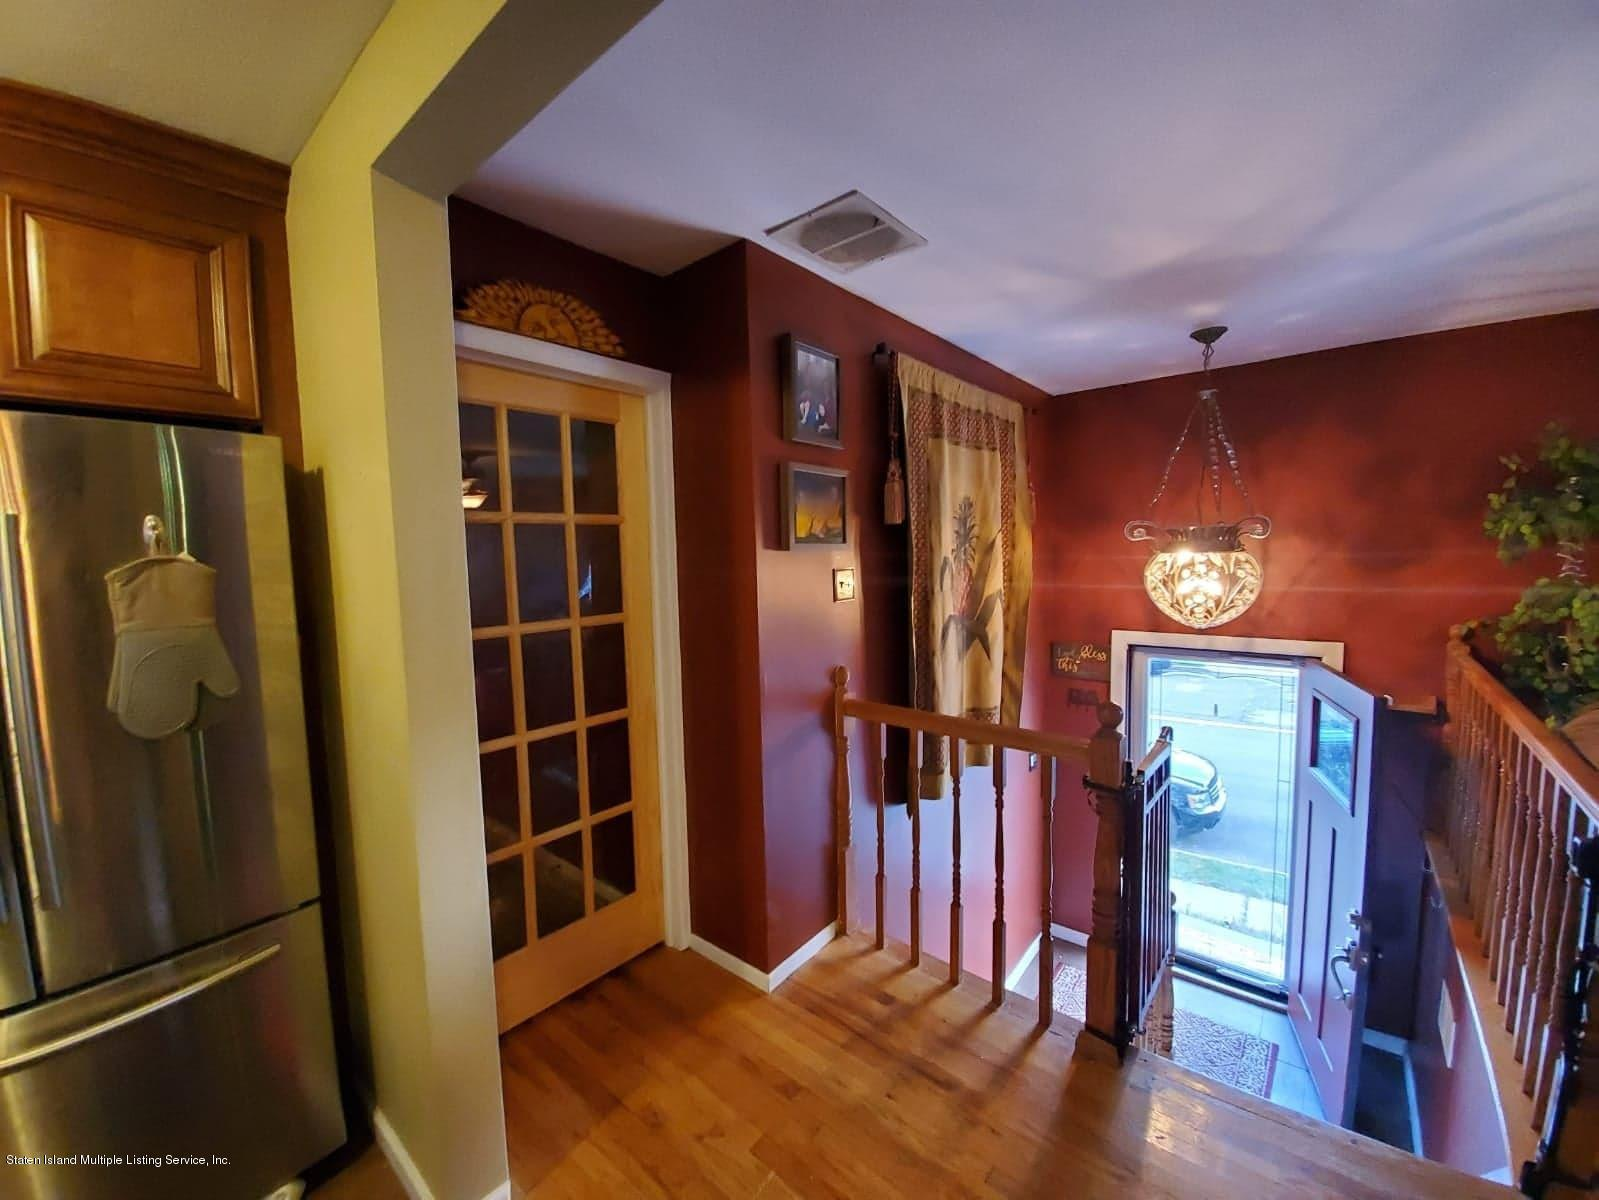 Single Family - Detached 63 Daleham Street  Staten Island, NY 10308, MLS-1131760-5